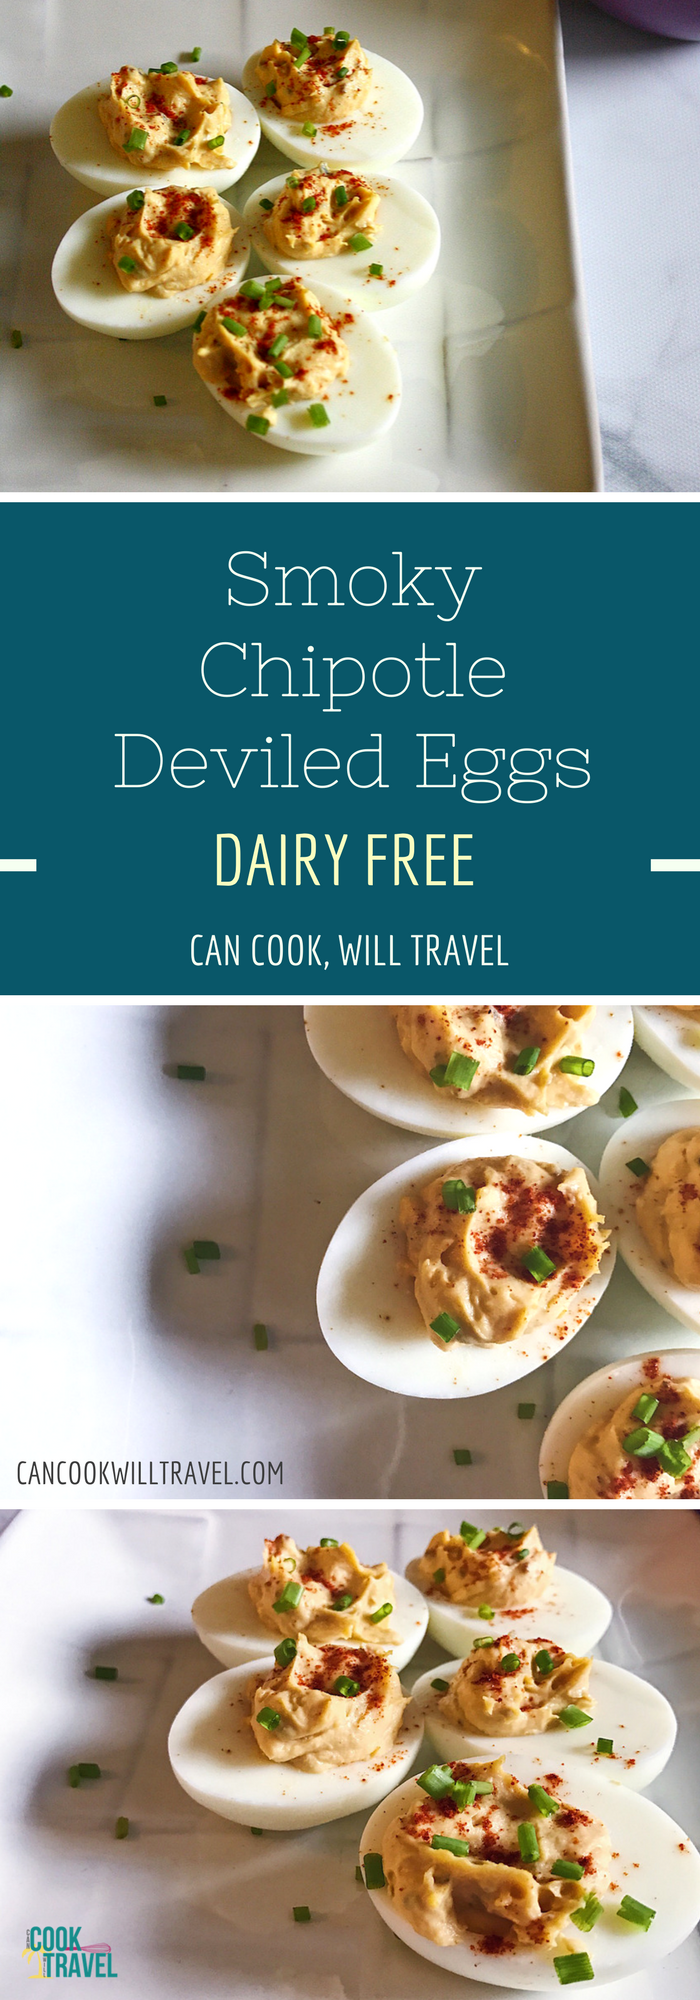 Easy Chipotle Deviled Eggs - Can Cook, Will Travel